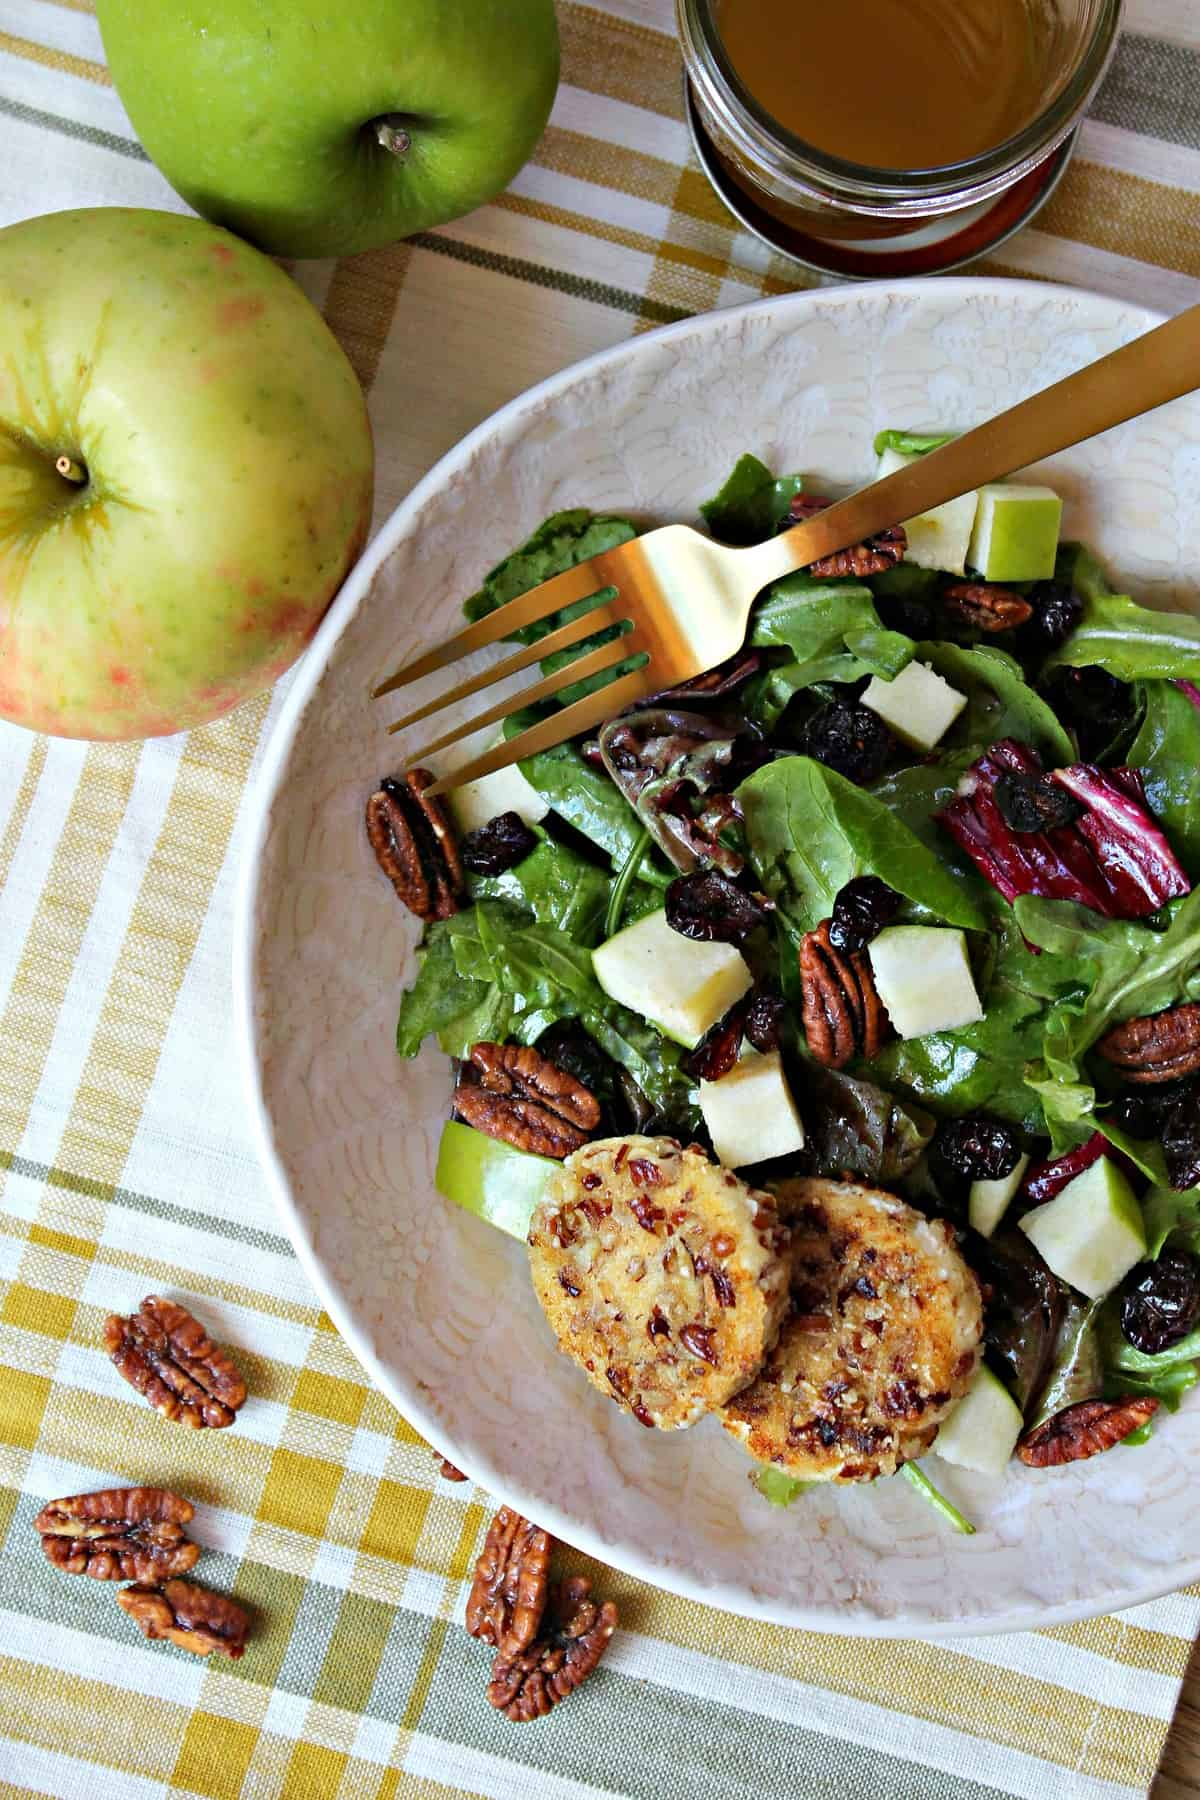 Crisp apples, cranberries, and pecan-crusted goat cheese medallions top this fresh autumn harvest salad for a sweet and filling lunch